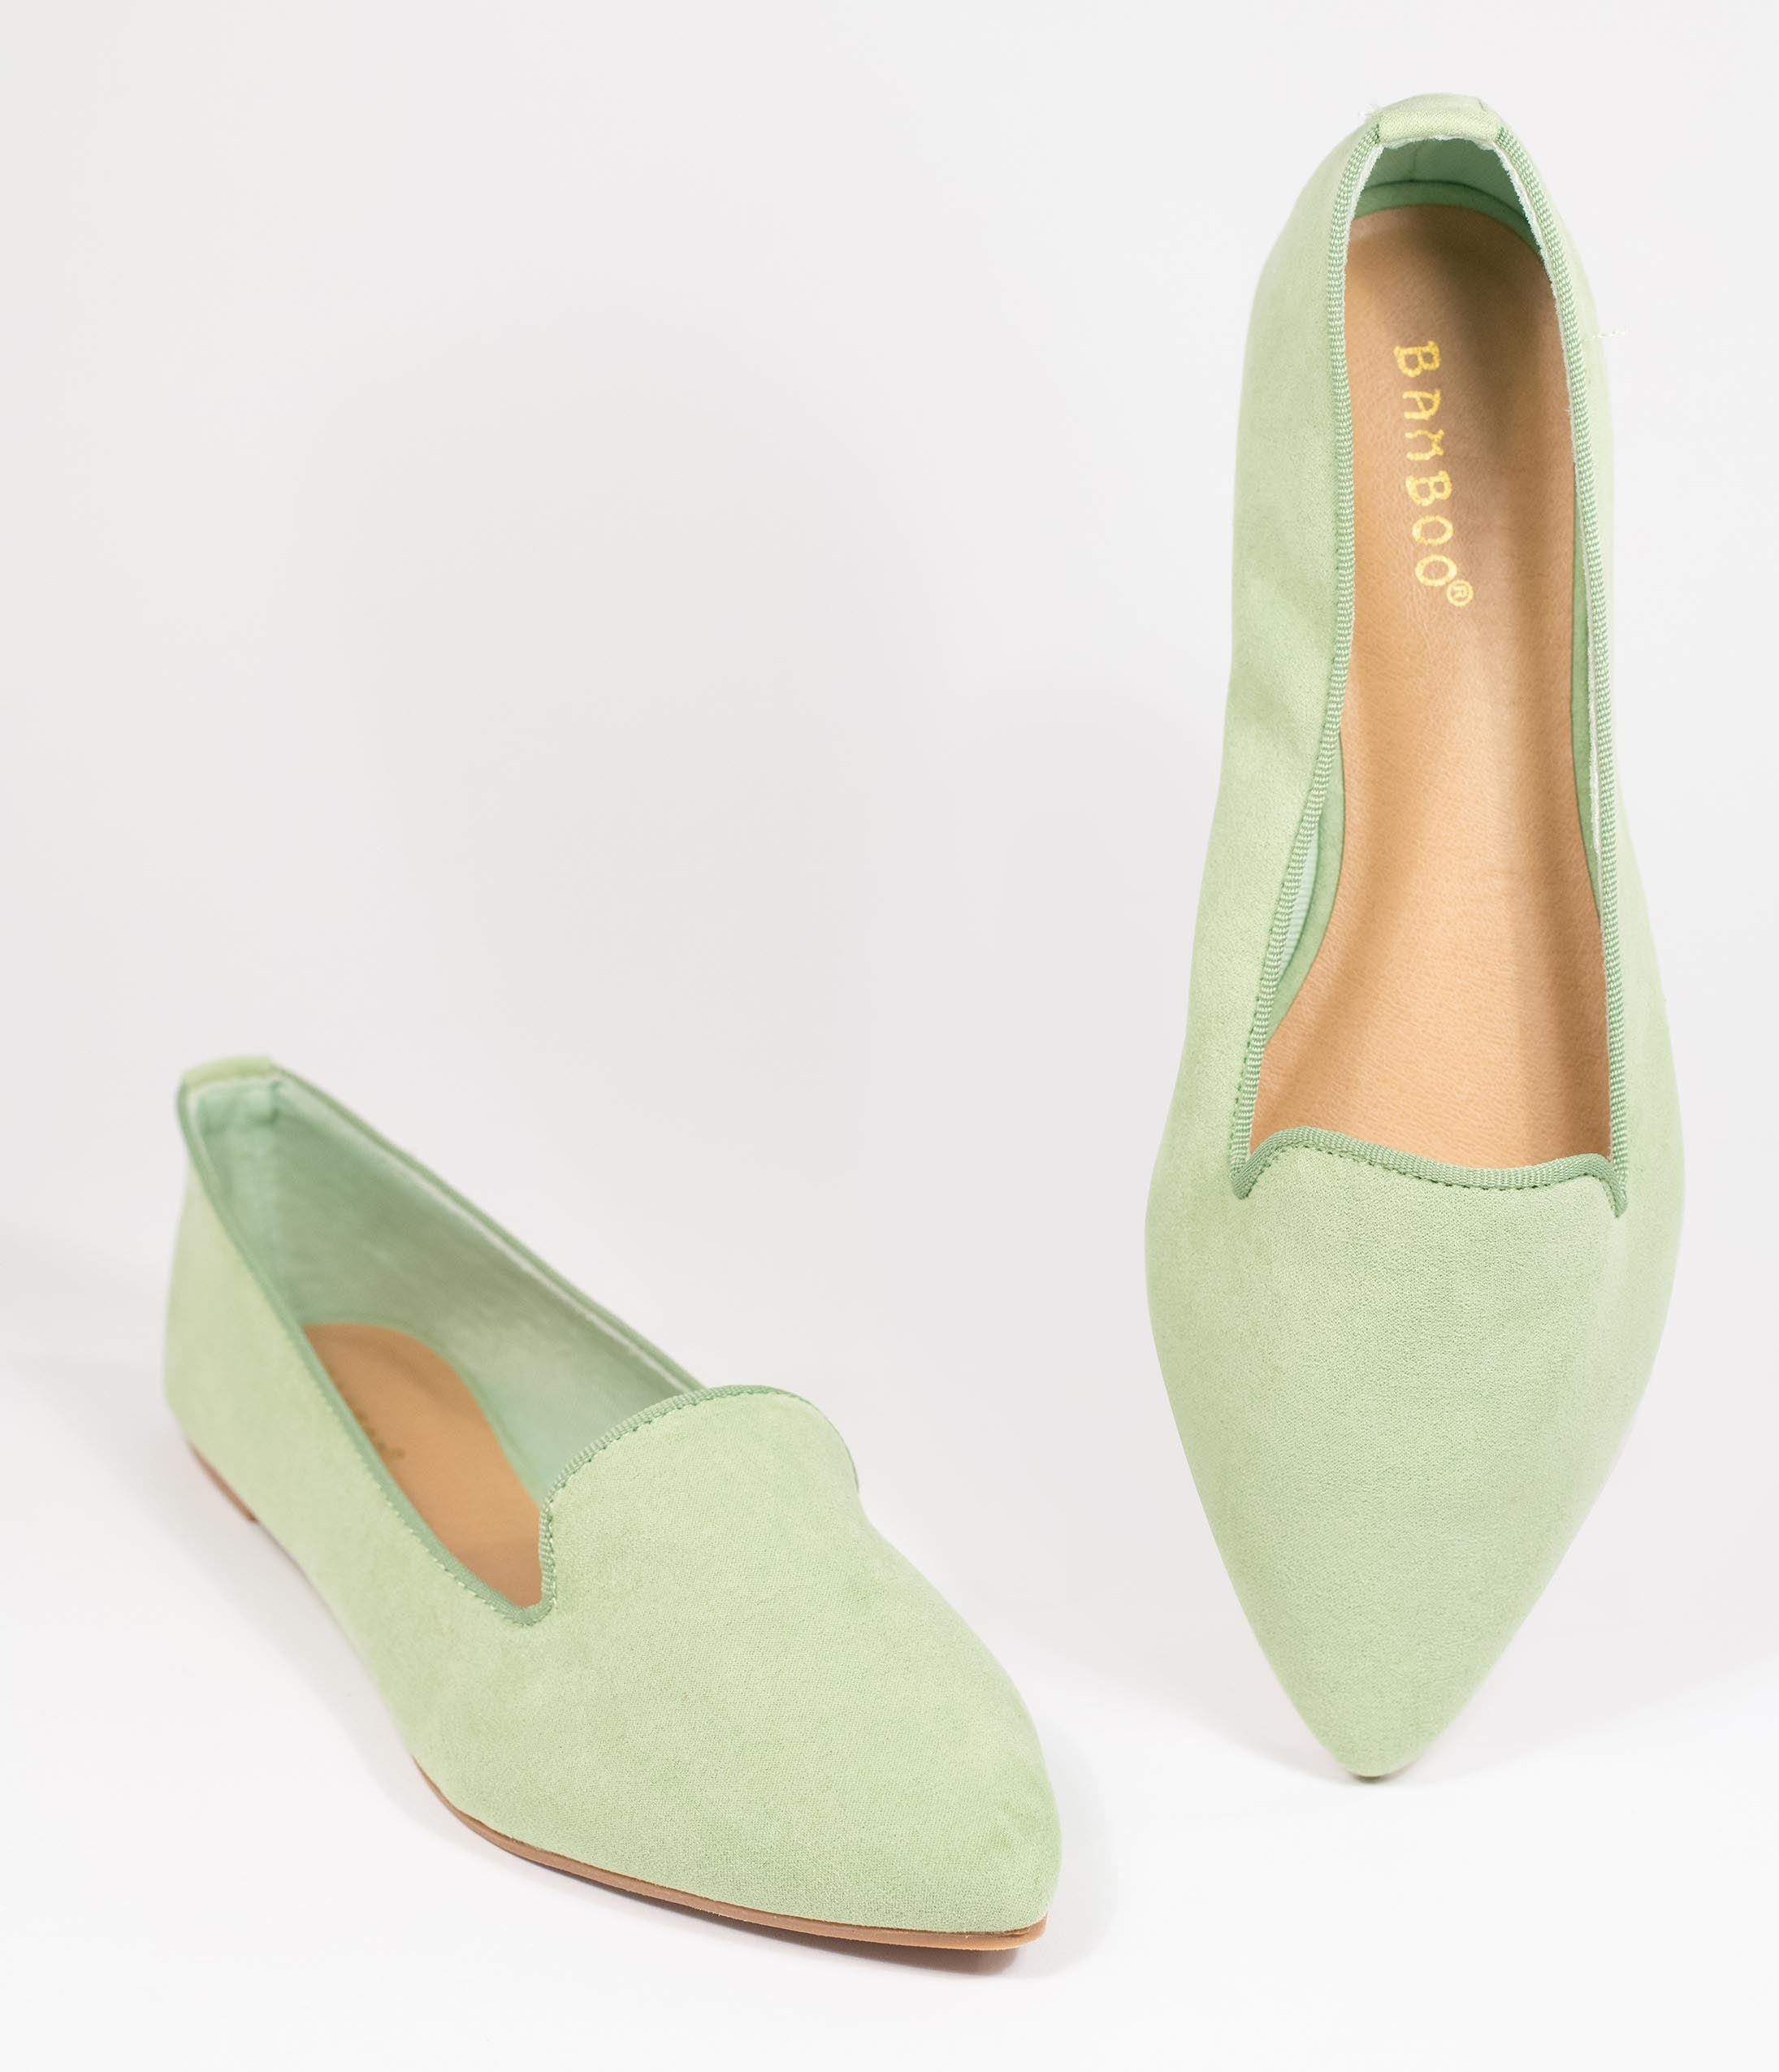 80s Shoes, Sneakers, Jelly flats Mint Suede Loafer Flats $42.00 AT vintagedancer.com